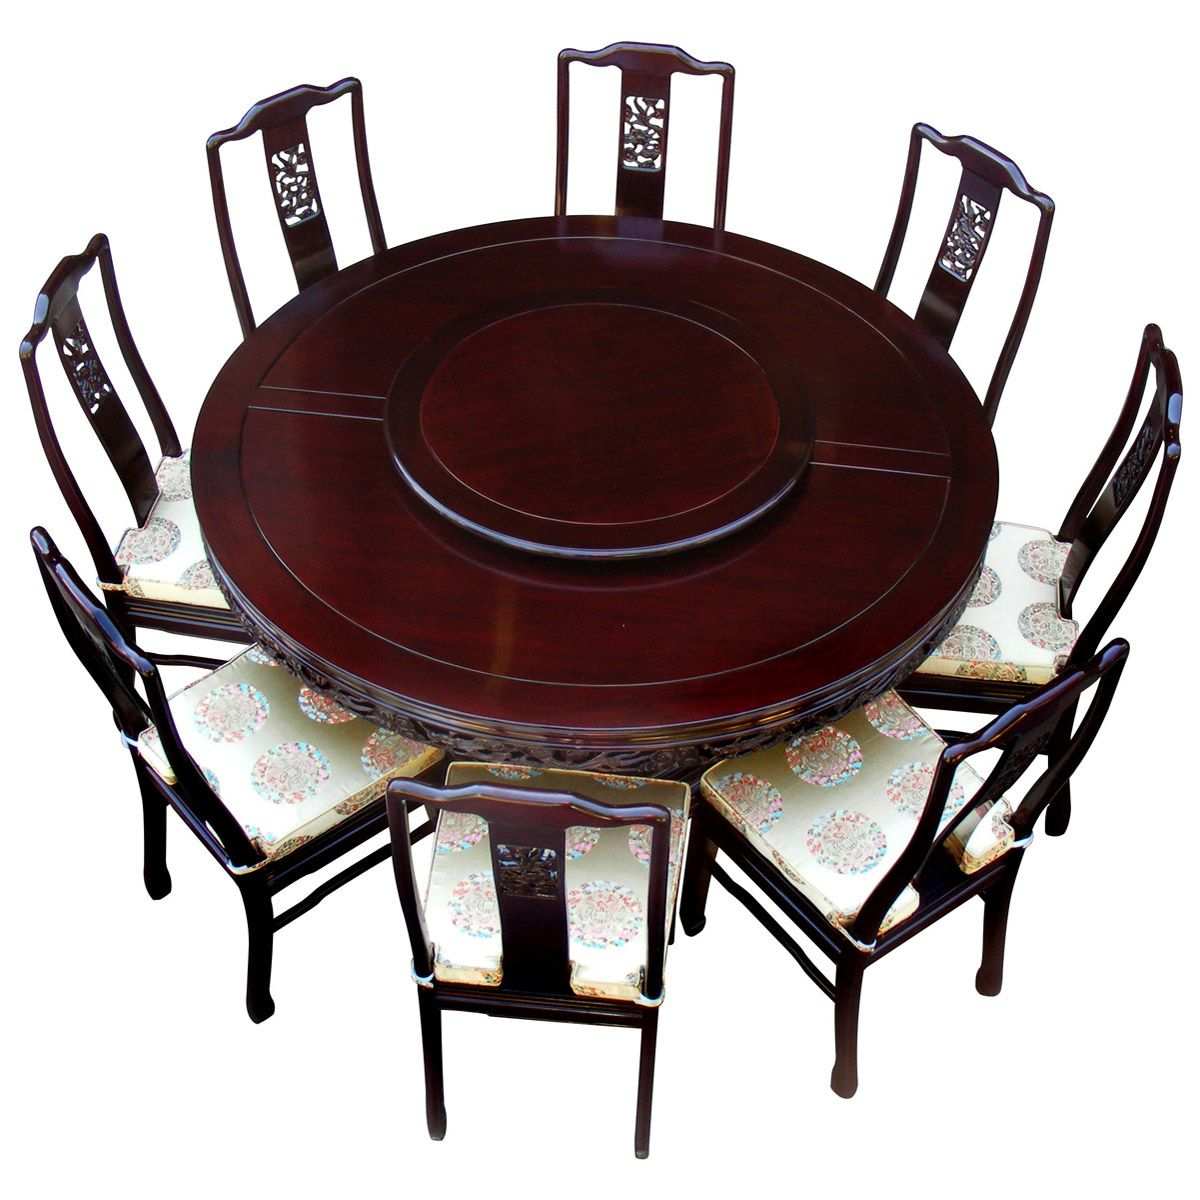 chinese rosewood dining table and chairs big nate dibs on this chair 60in dragon round with 8